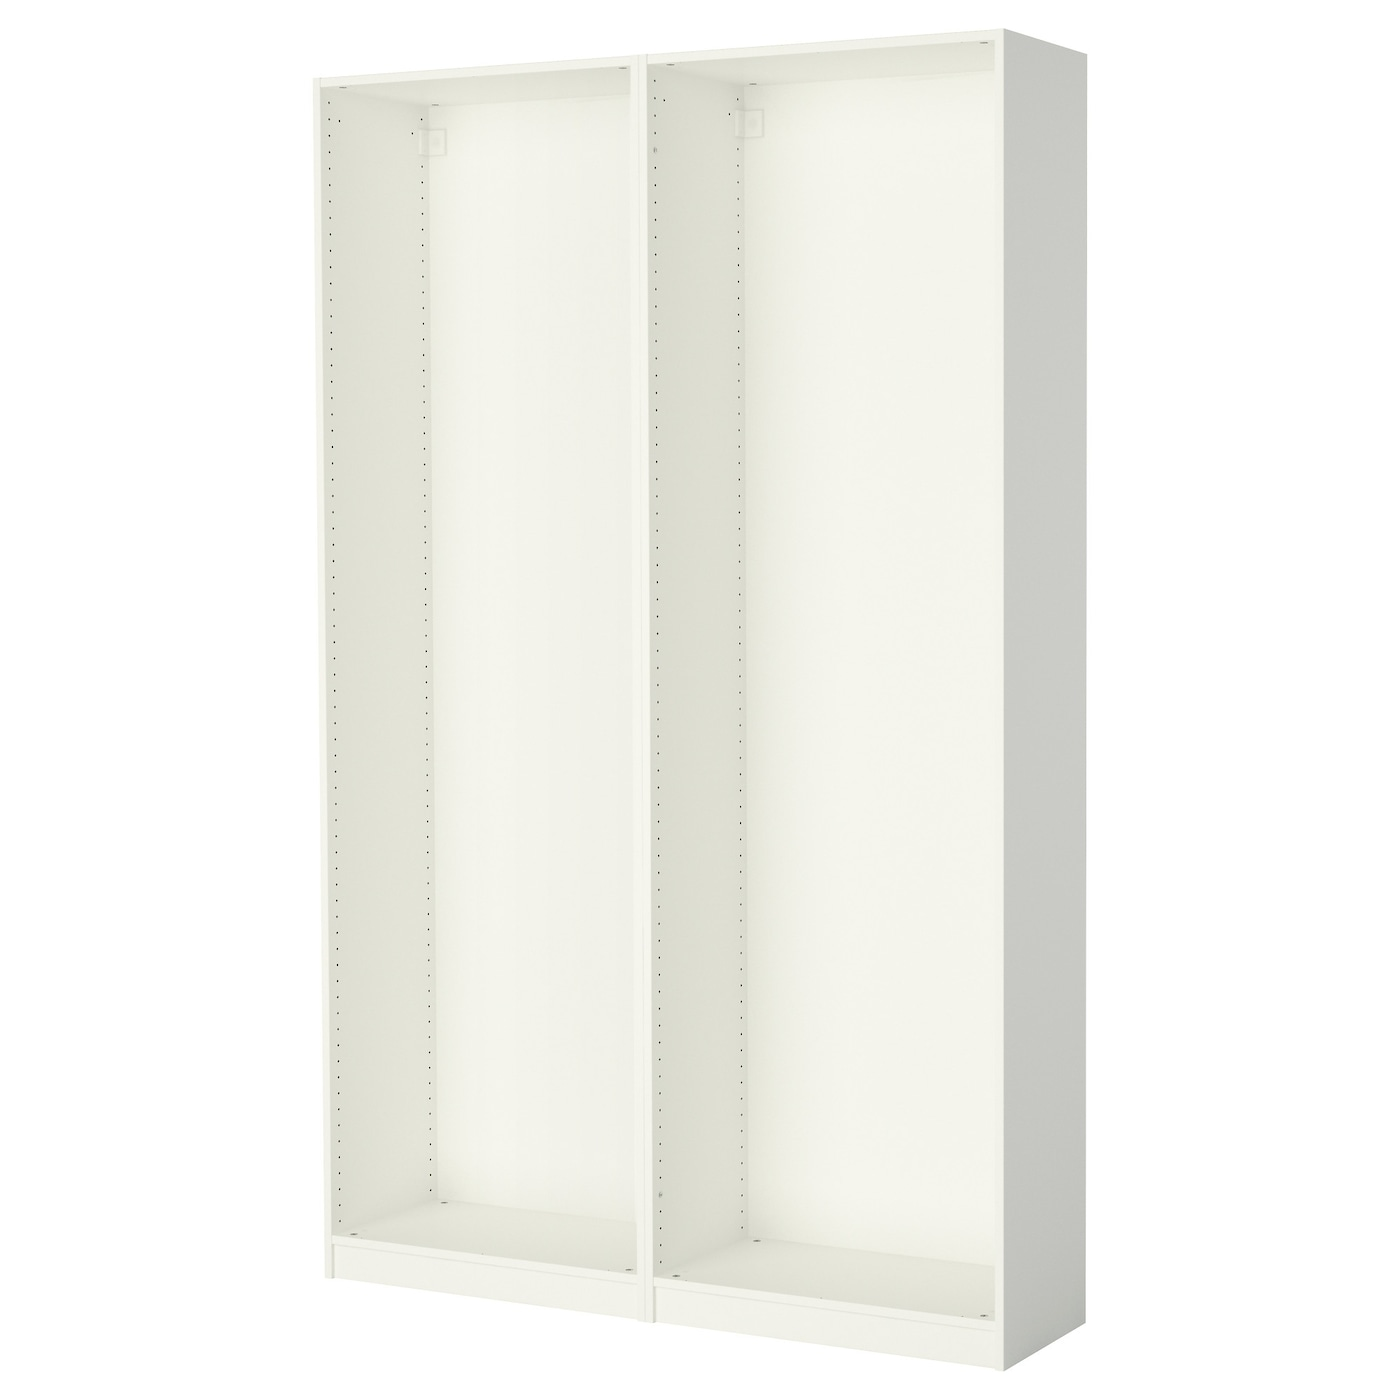 pax 2 caissons armoire blanc 150 x 35 x 236 cm ikea. Black Bedroom Furniture Sets. Home Design Ideas